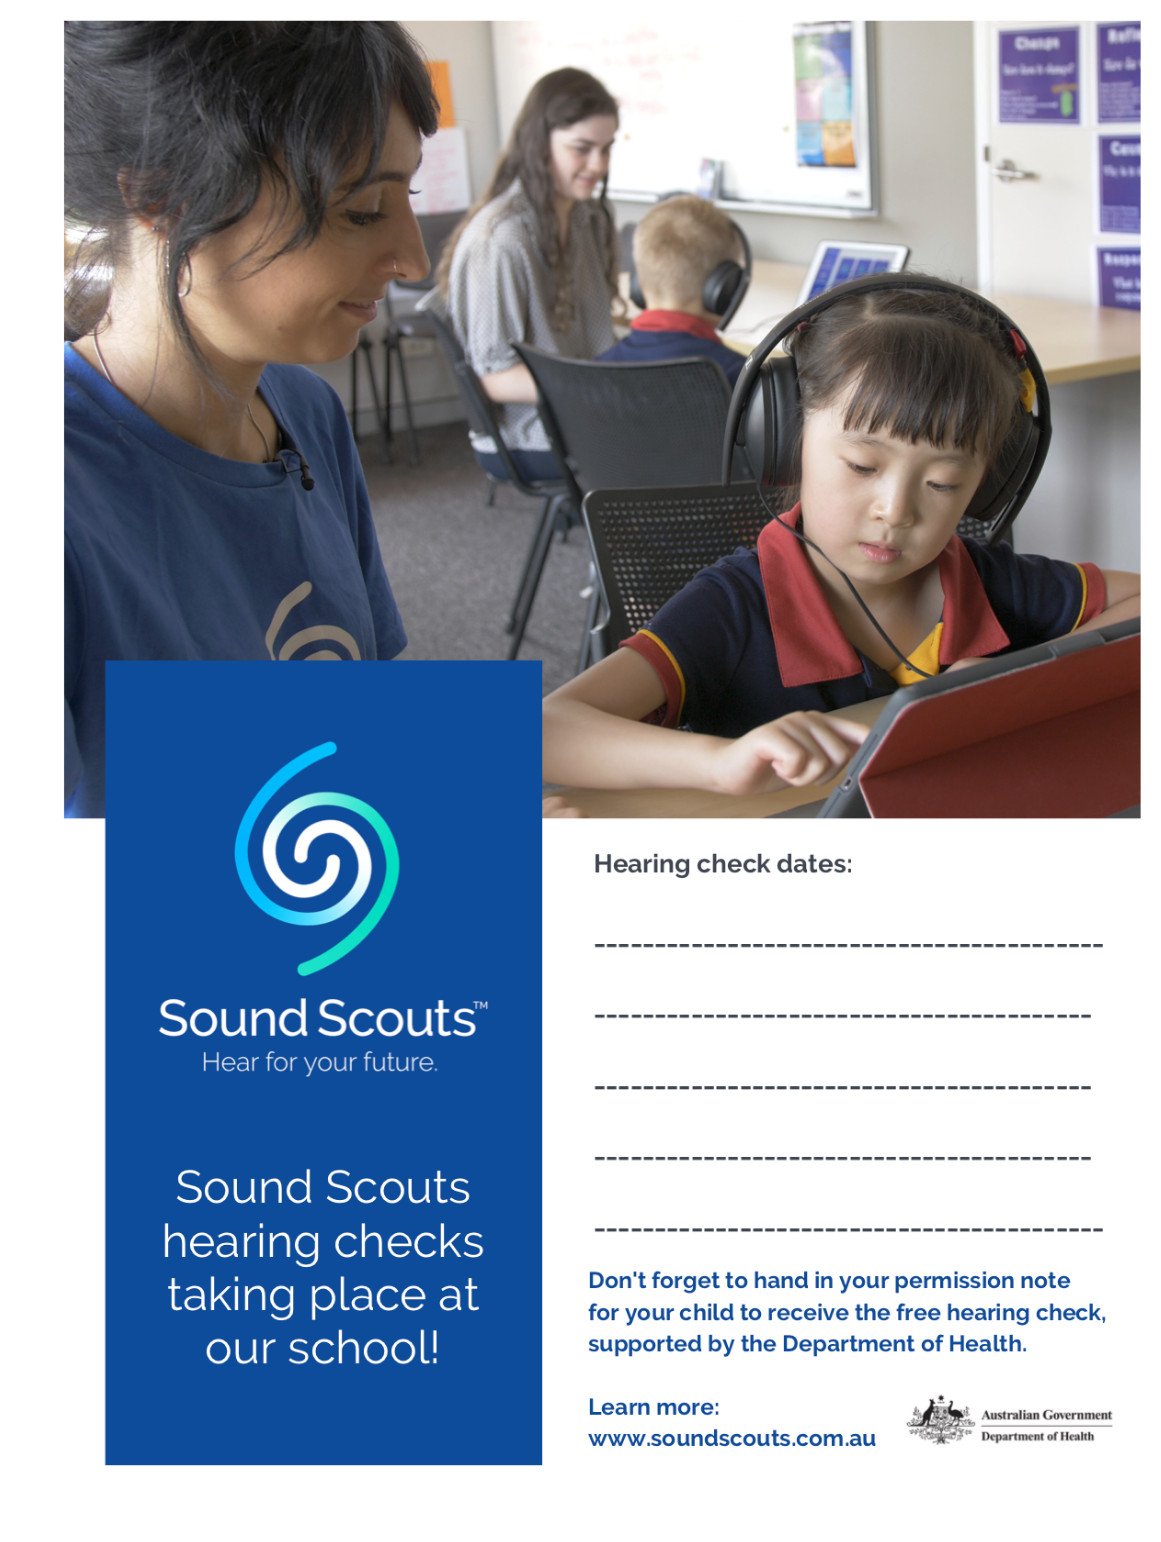 Sound Scouts at School Poster Thumbnail